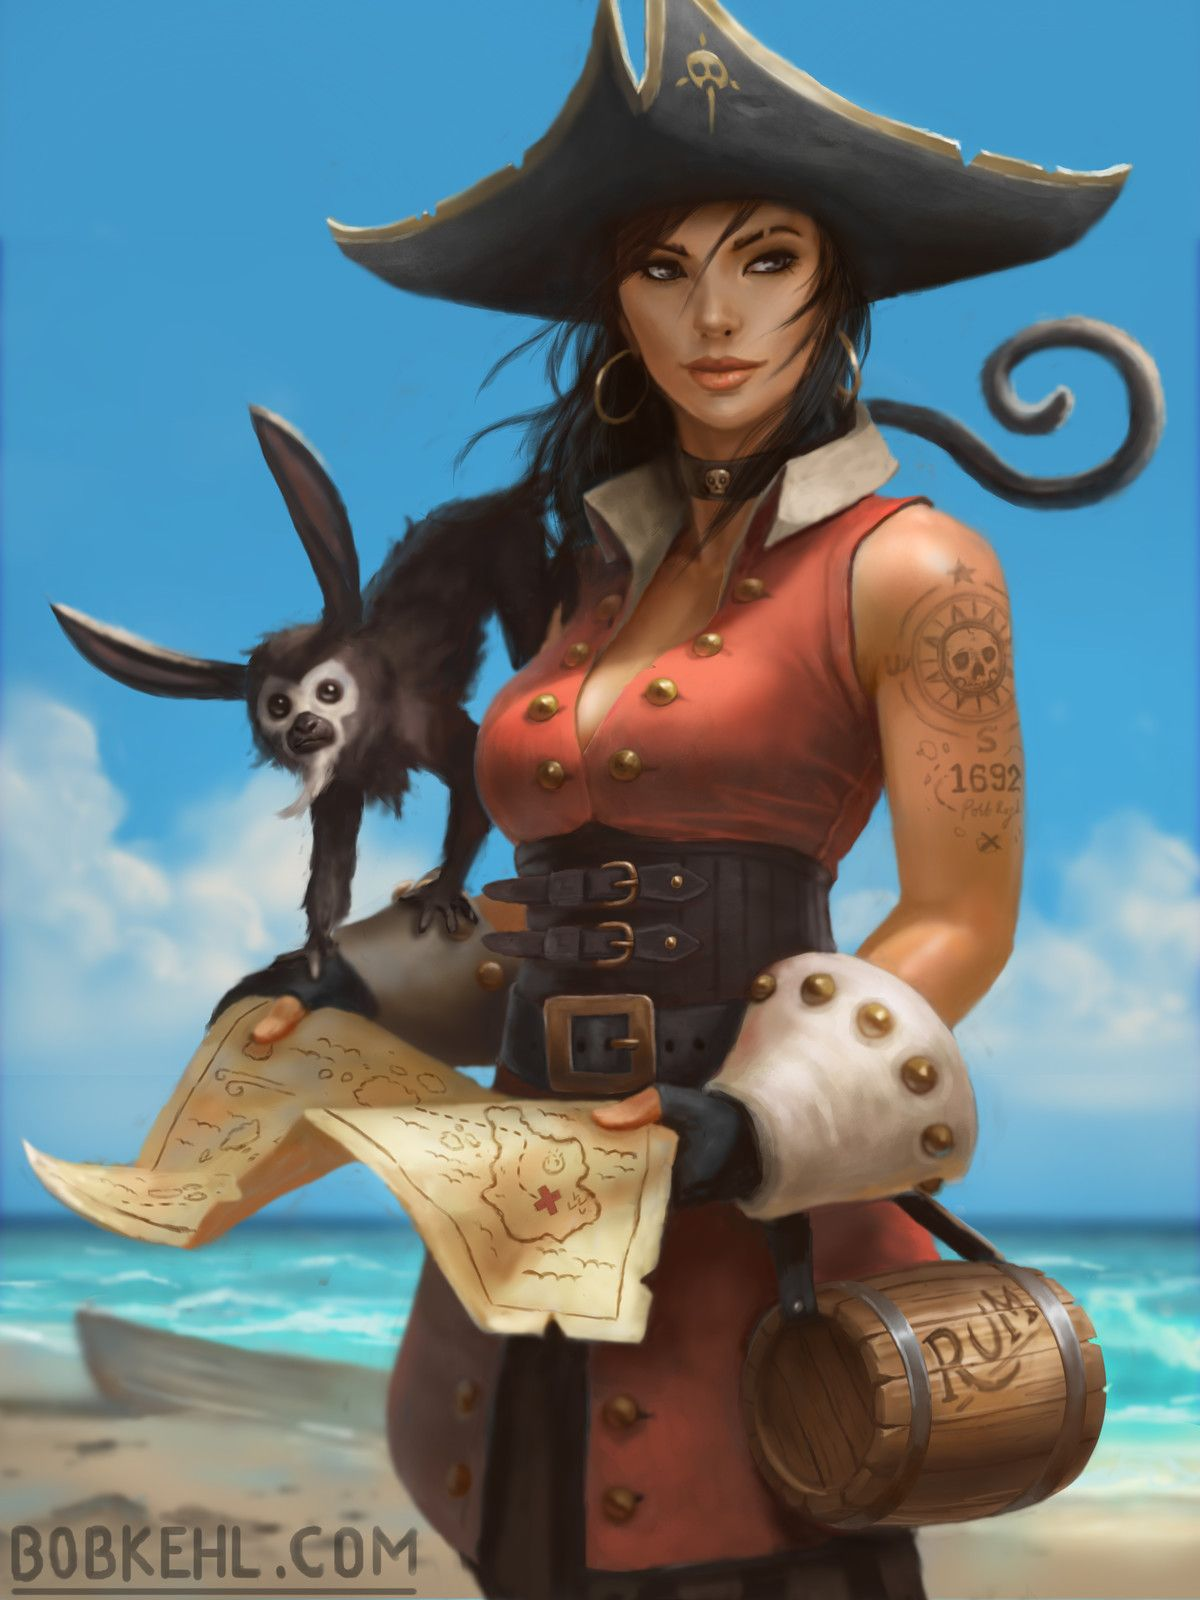 Pin by Luca Putscher on Movies | Pirate art, Fantasy